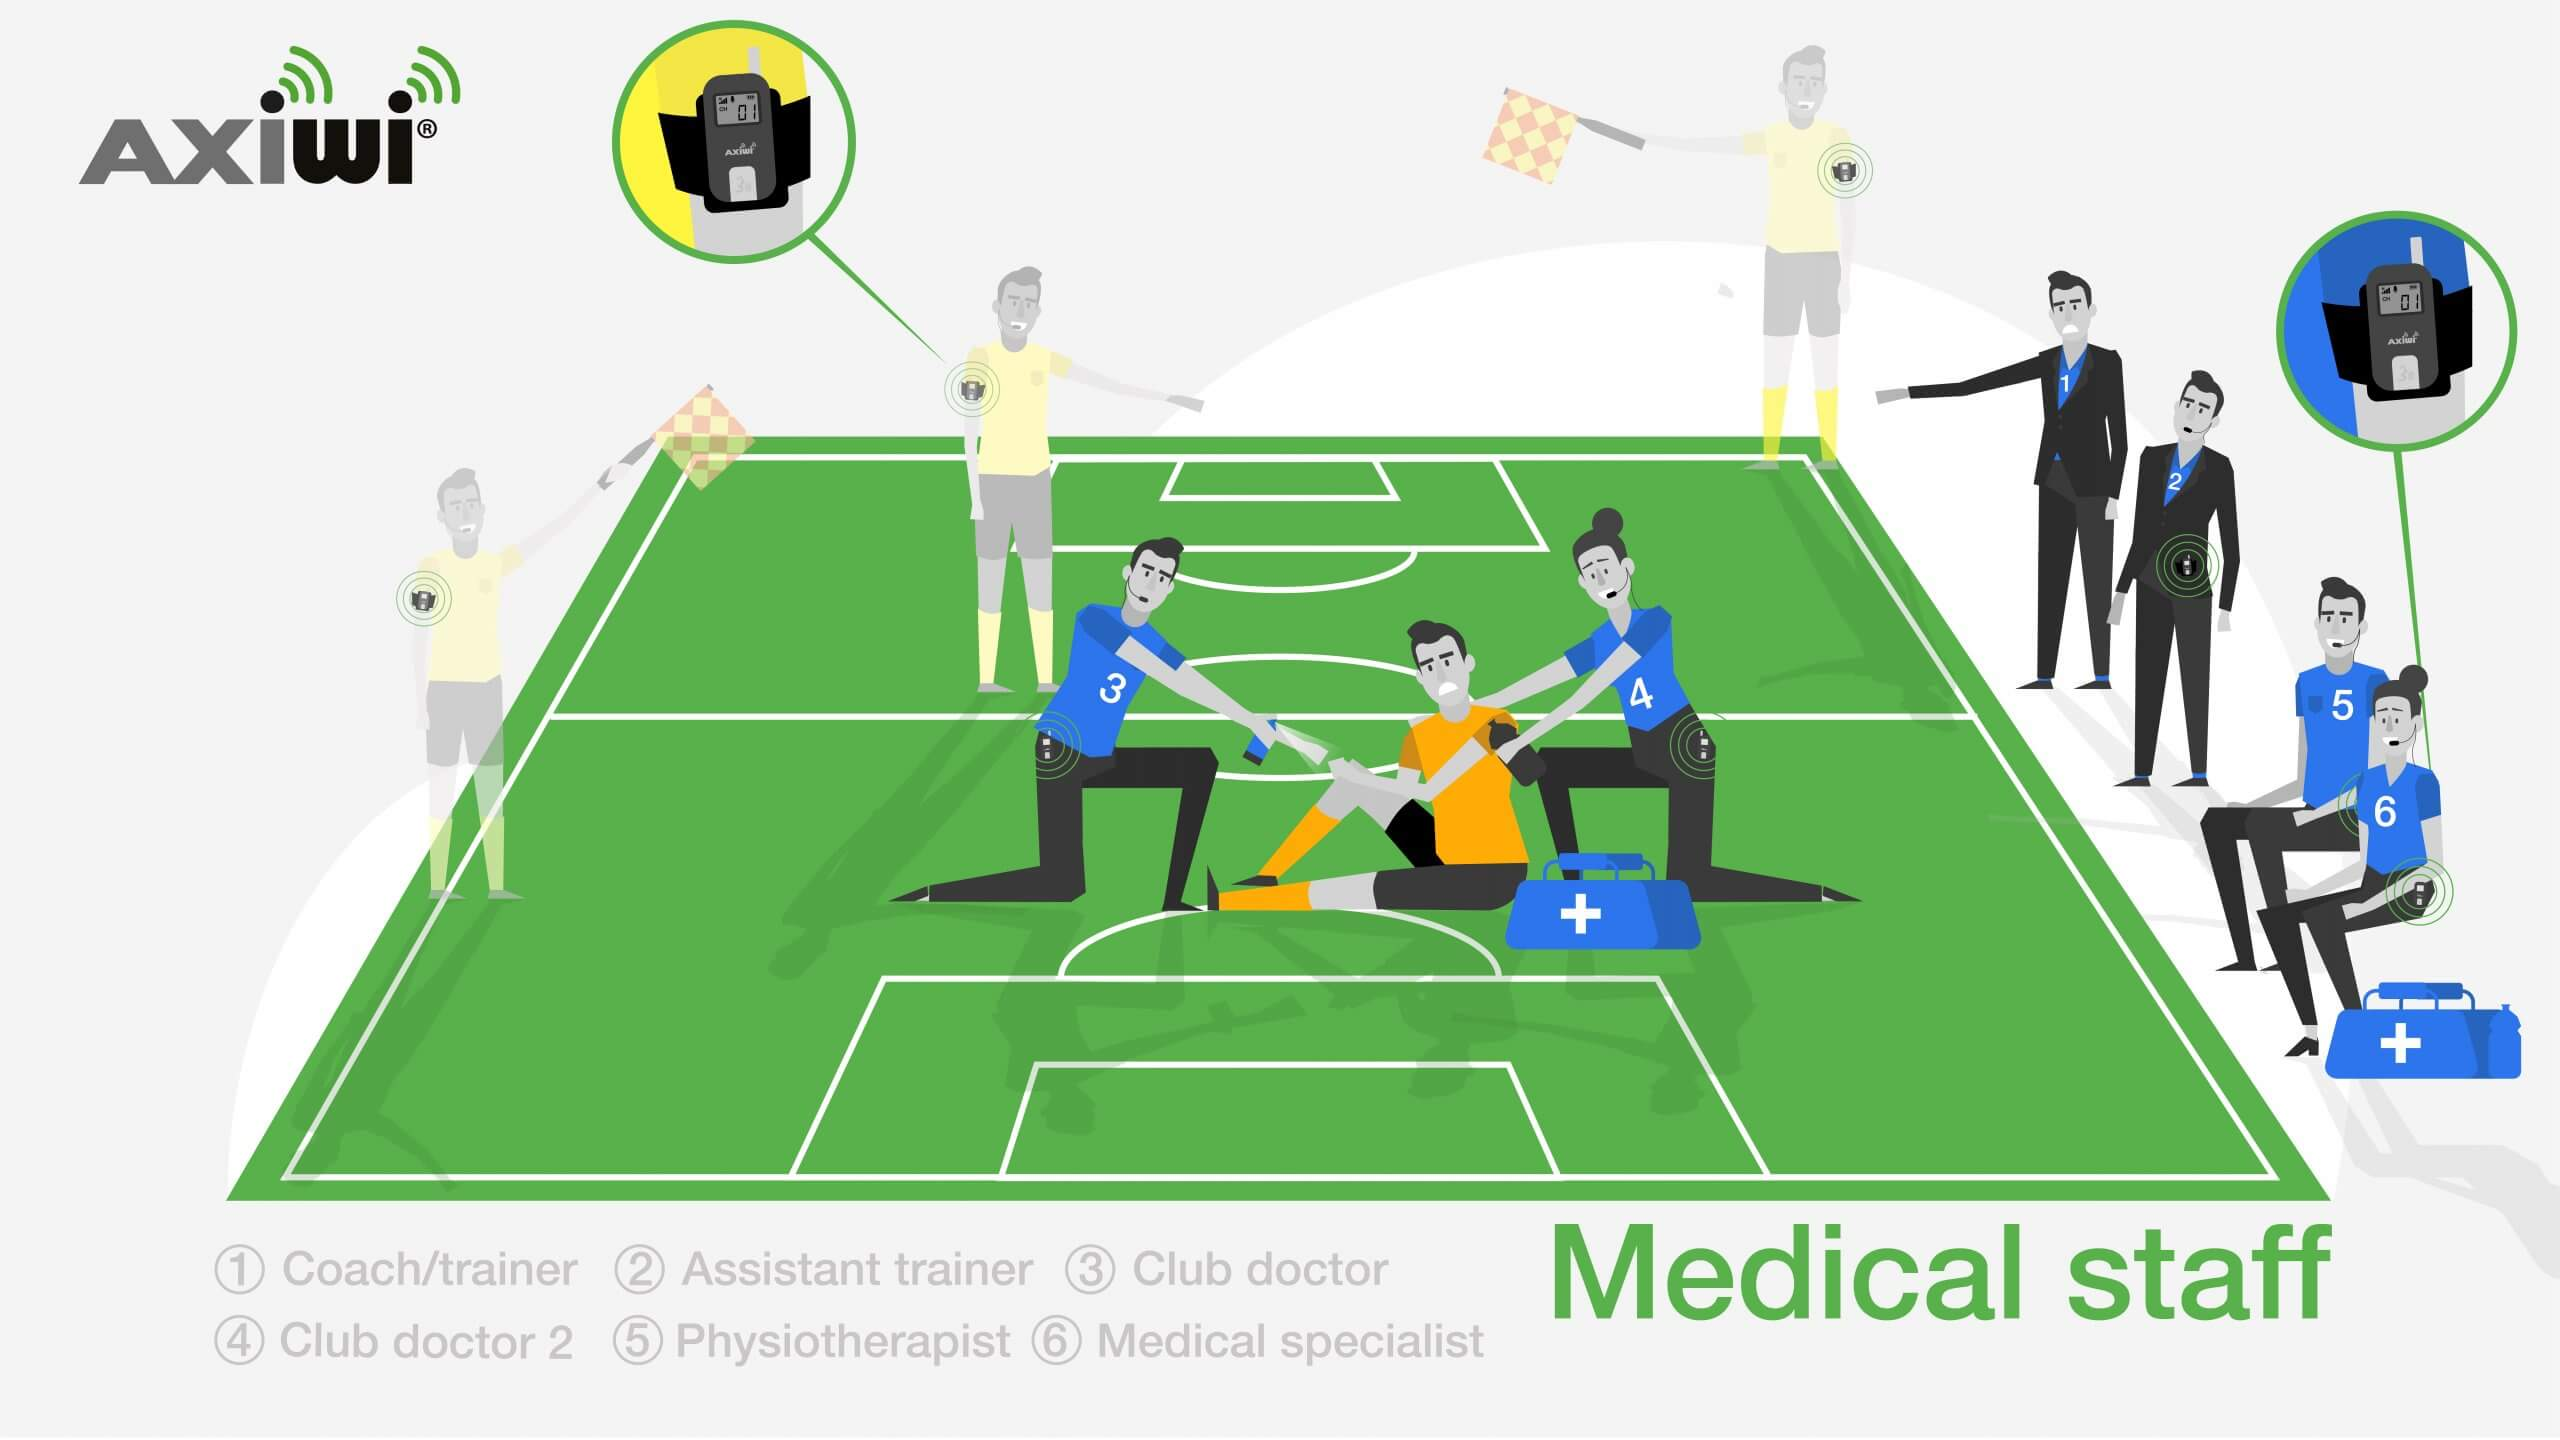 wireless communication system sports for mutual communication of the medical staff